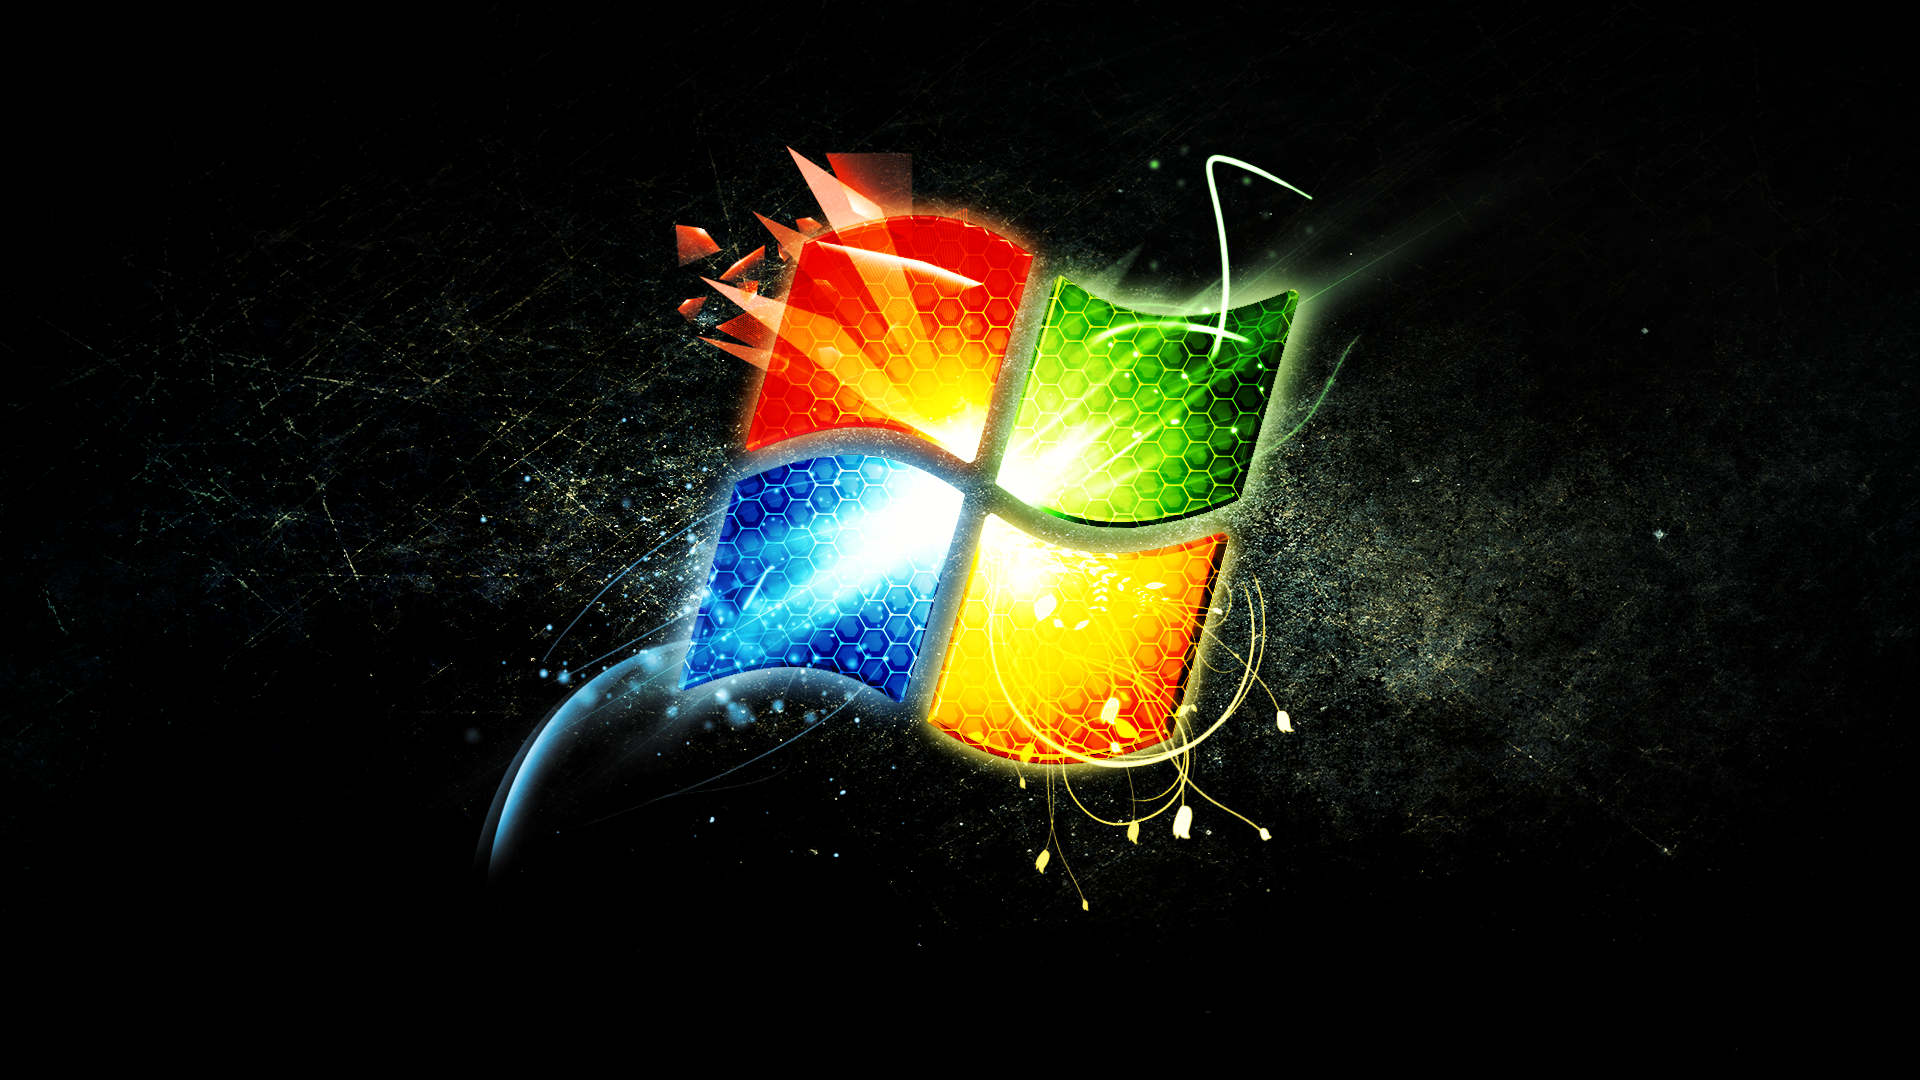 Windows (Wallpaper) by Hardii